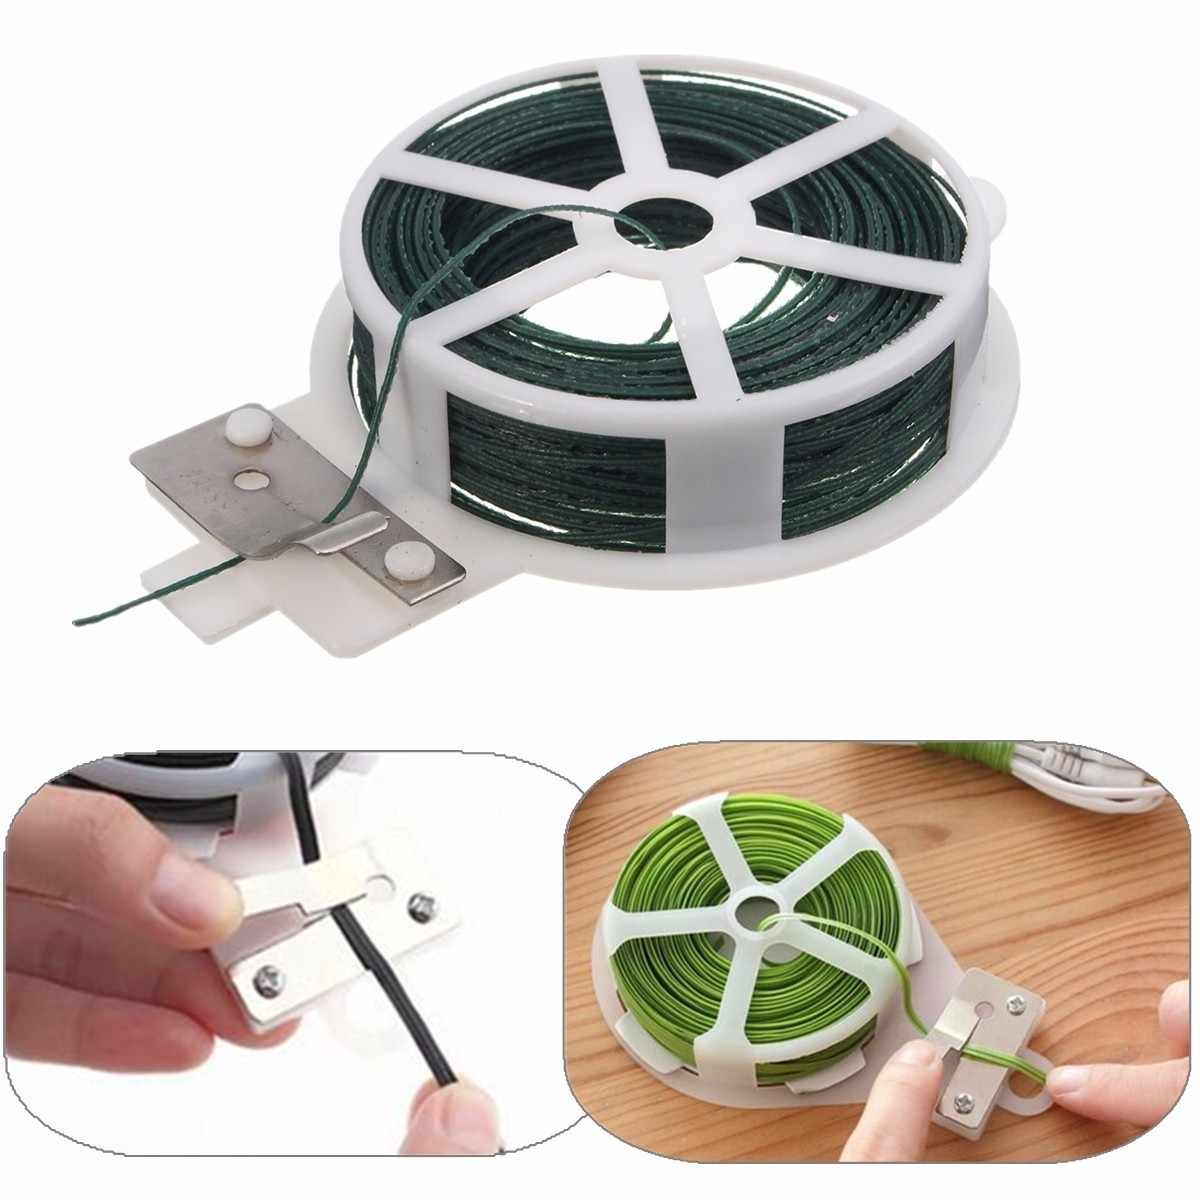 30m Roll Garden Wire Tie Wire Cable Reel With Cutter for Gardening Plant Bush Flower Reusable For Home Gardening Office